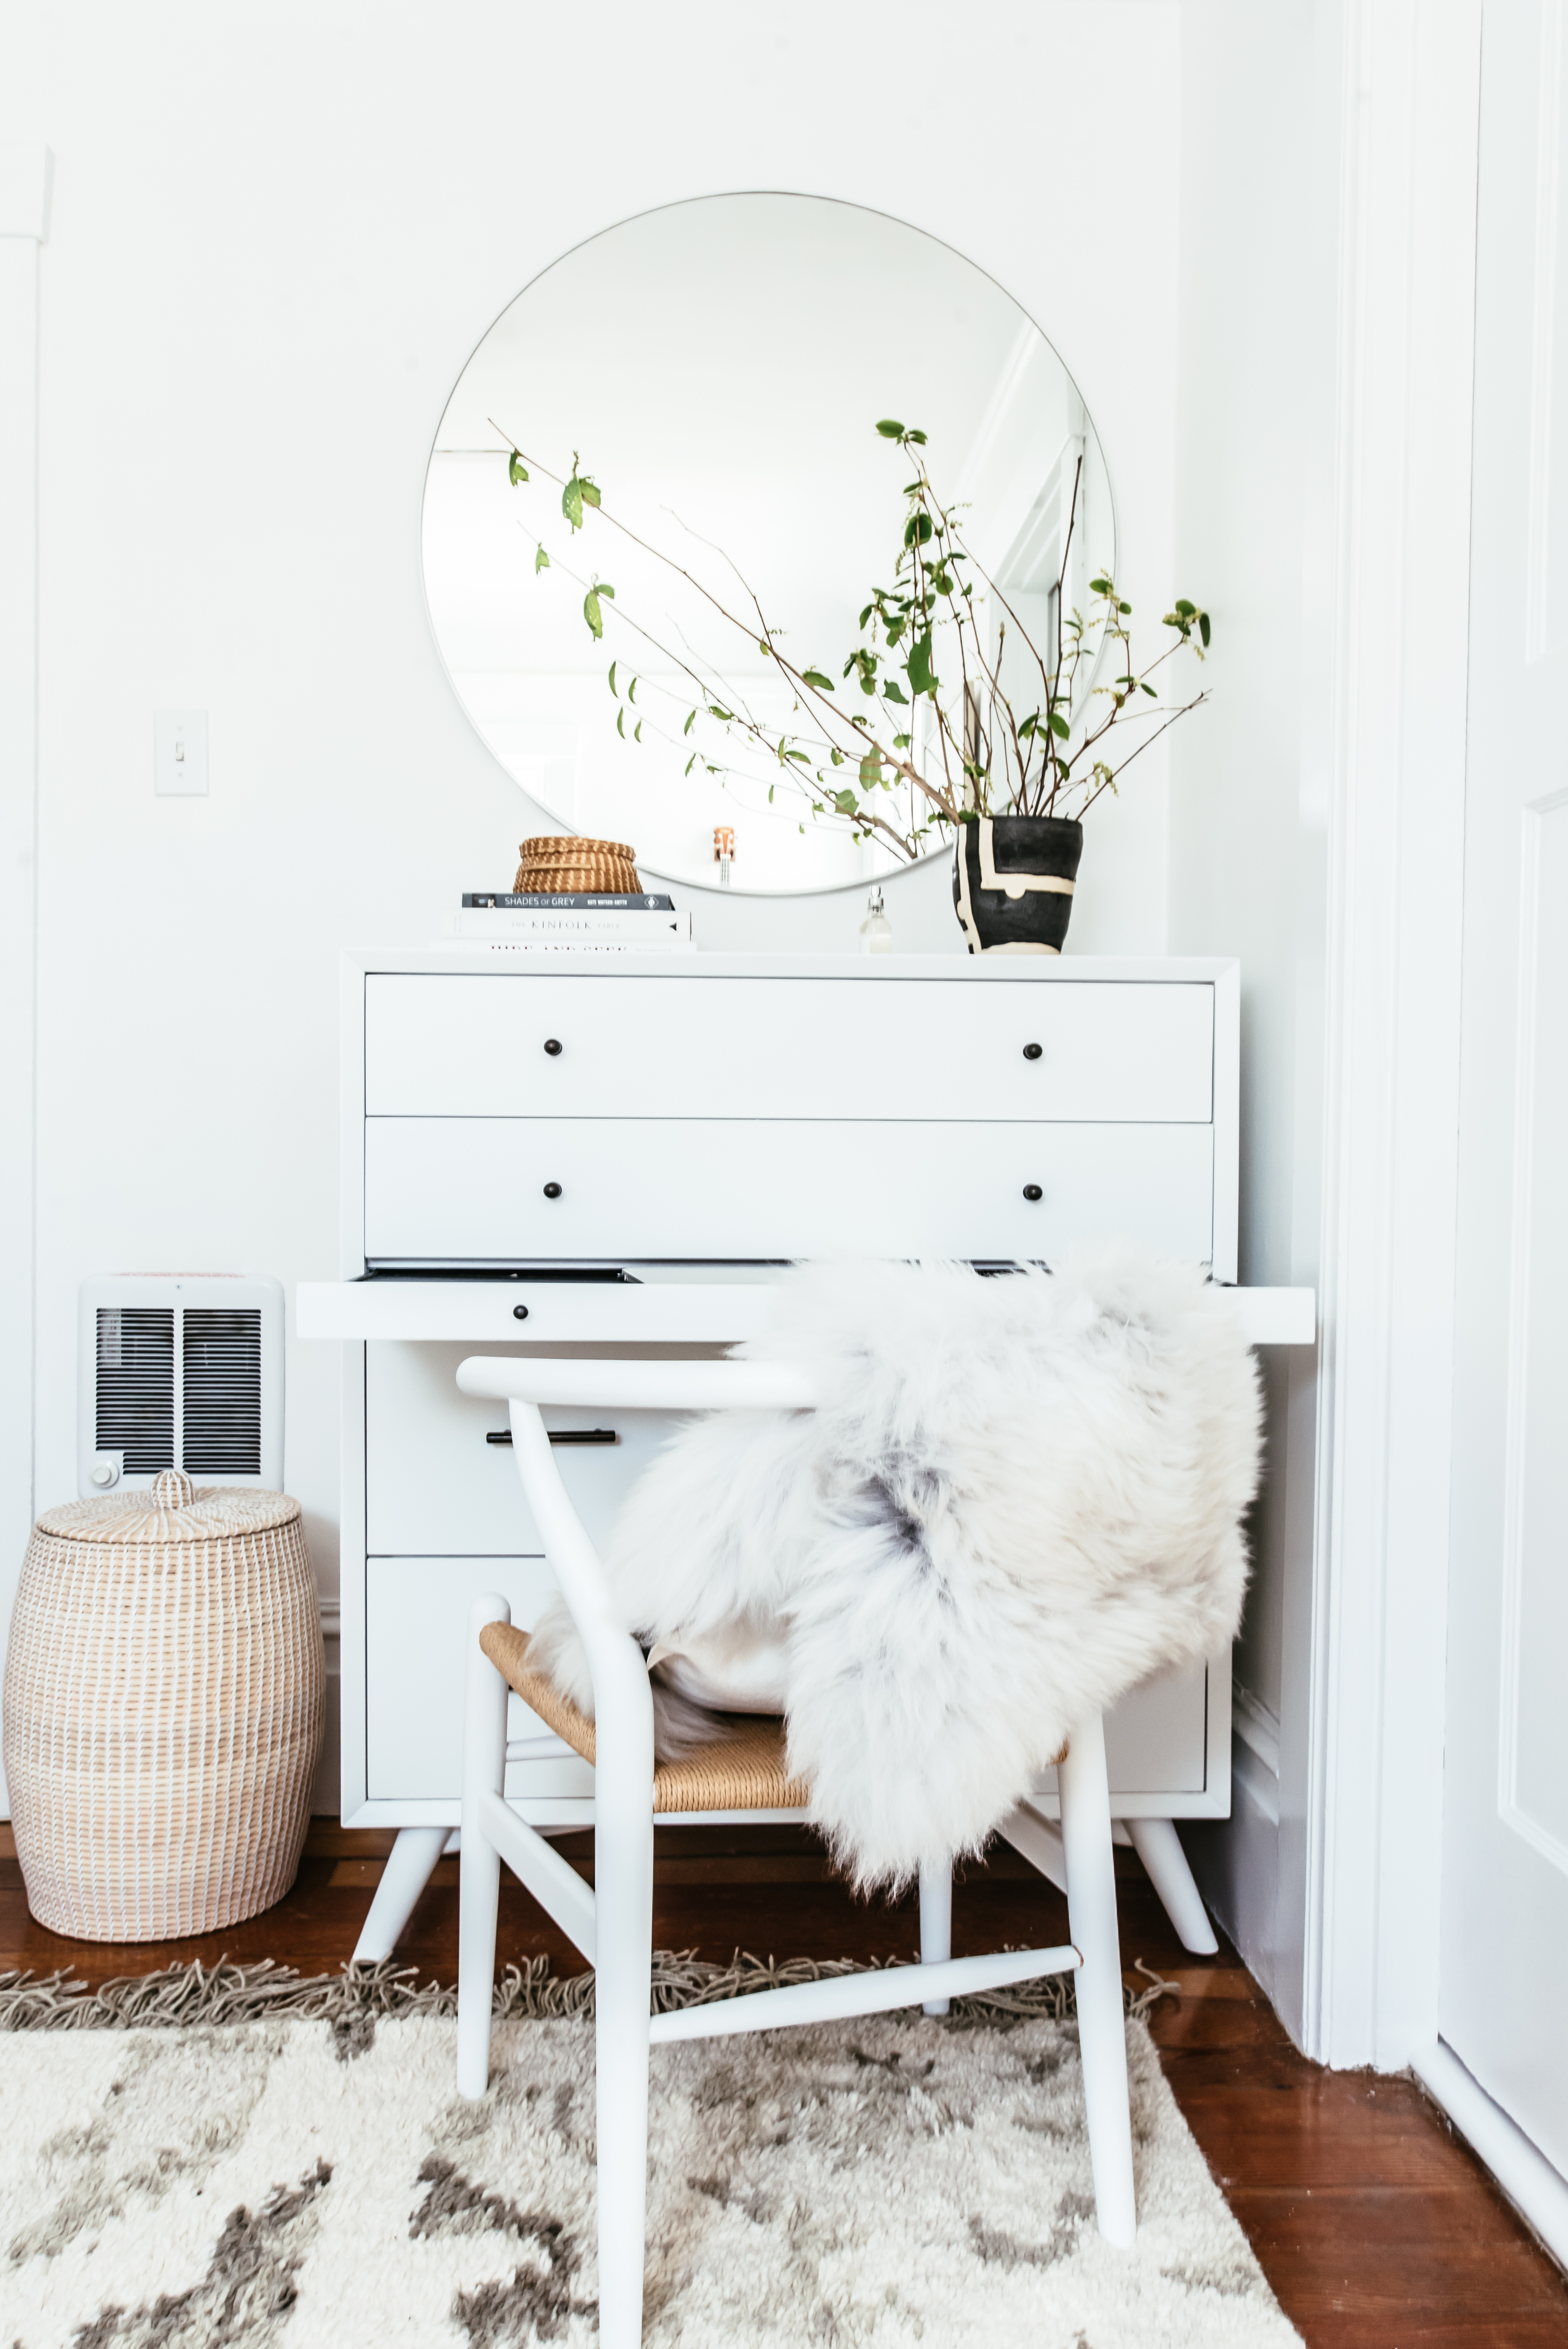 5 Small Master Bedroom Ideas to Make the Most of Minimal Square Footage